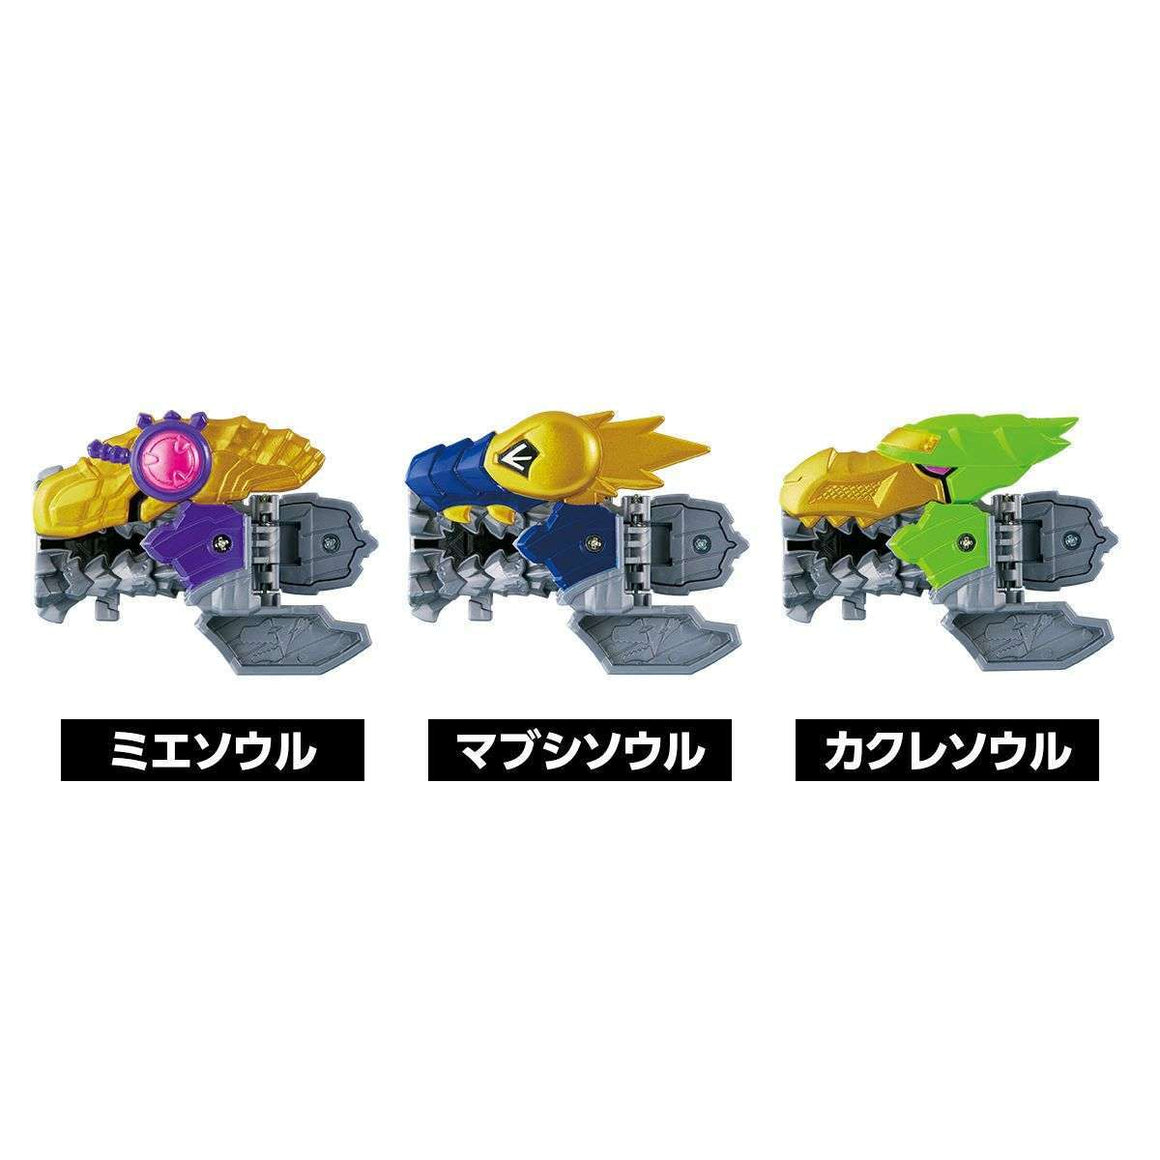 CSTOYS INTERNATIONAL:[May. 2019] Ryusoulger: DX Ryusoul Set 03